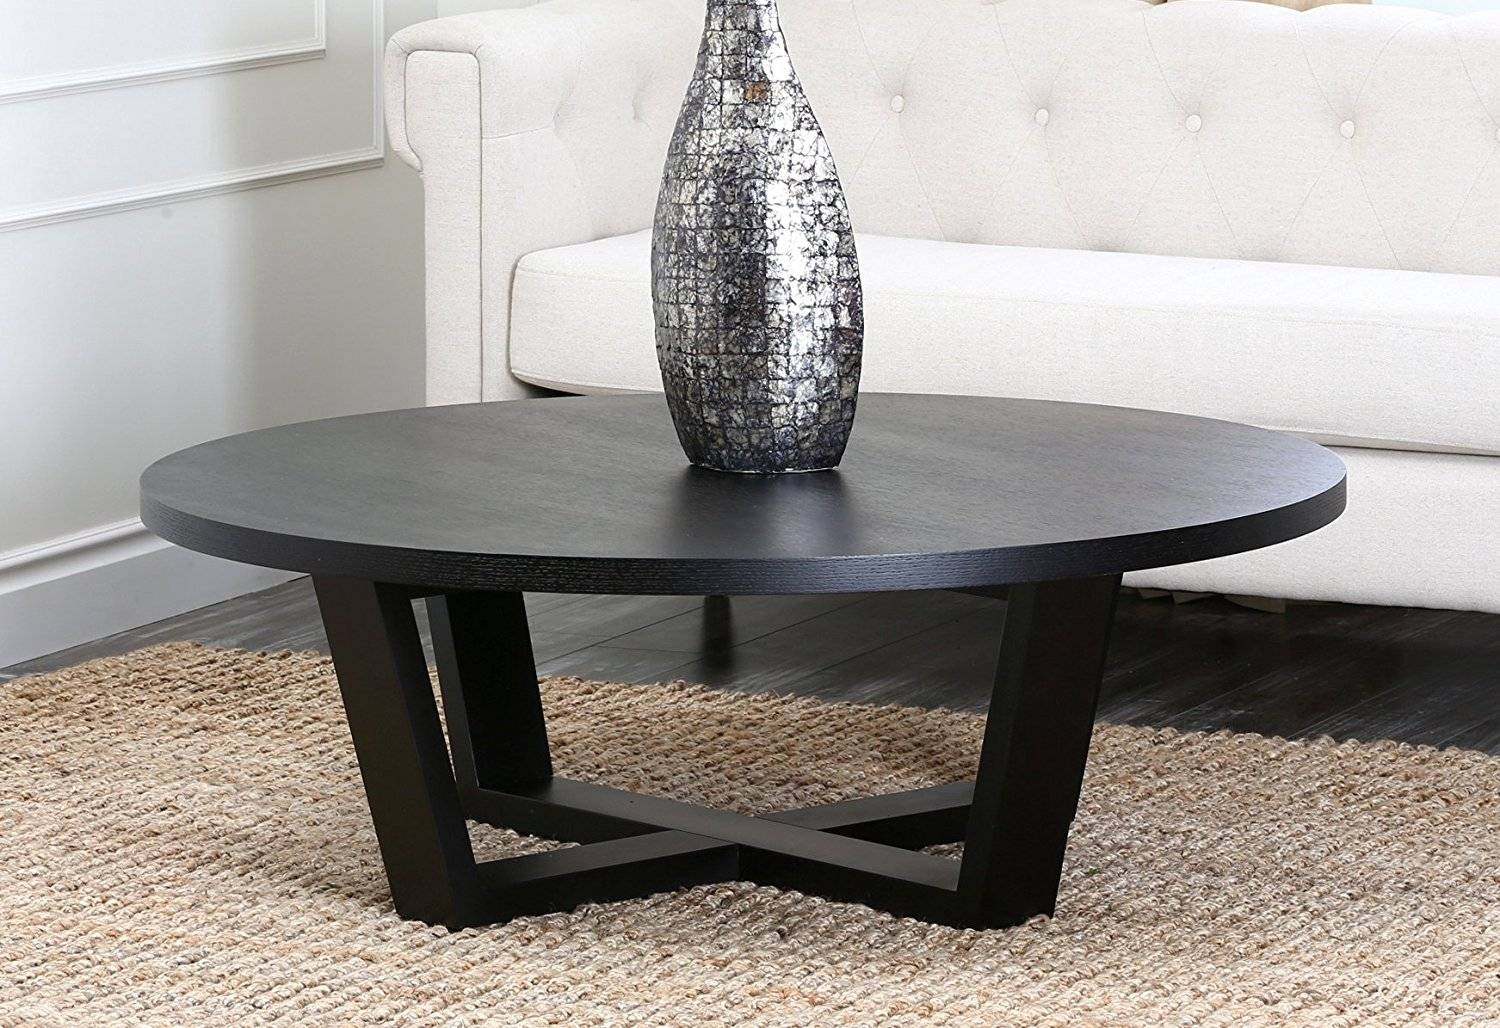 Abbyson Living Heritage Round Espresso Coffee Table | Coffee intended for Heritage Coffee Tables (Image 3 of 30)